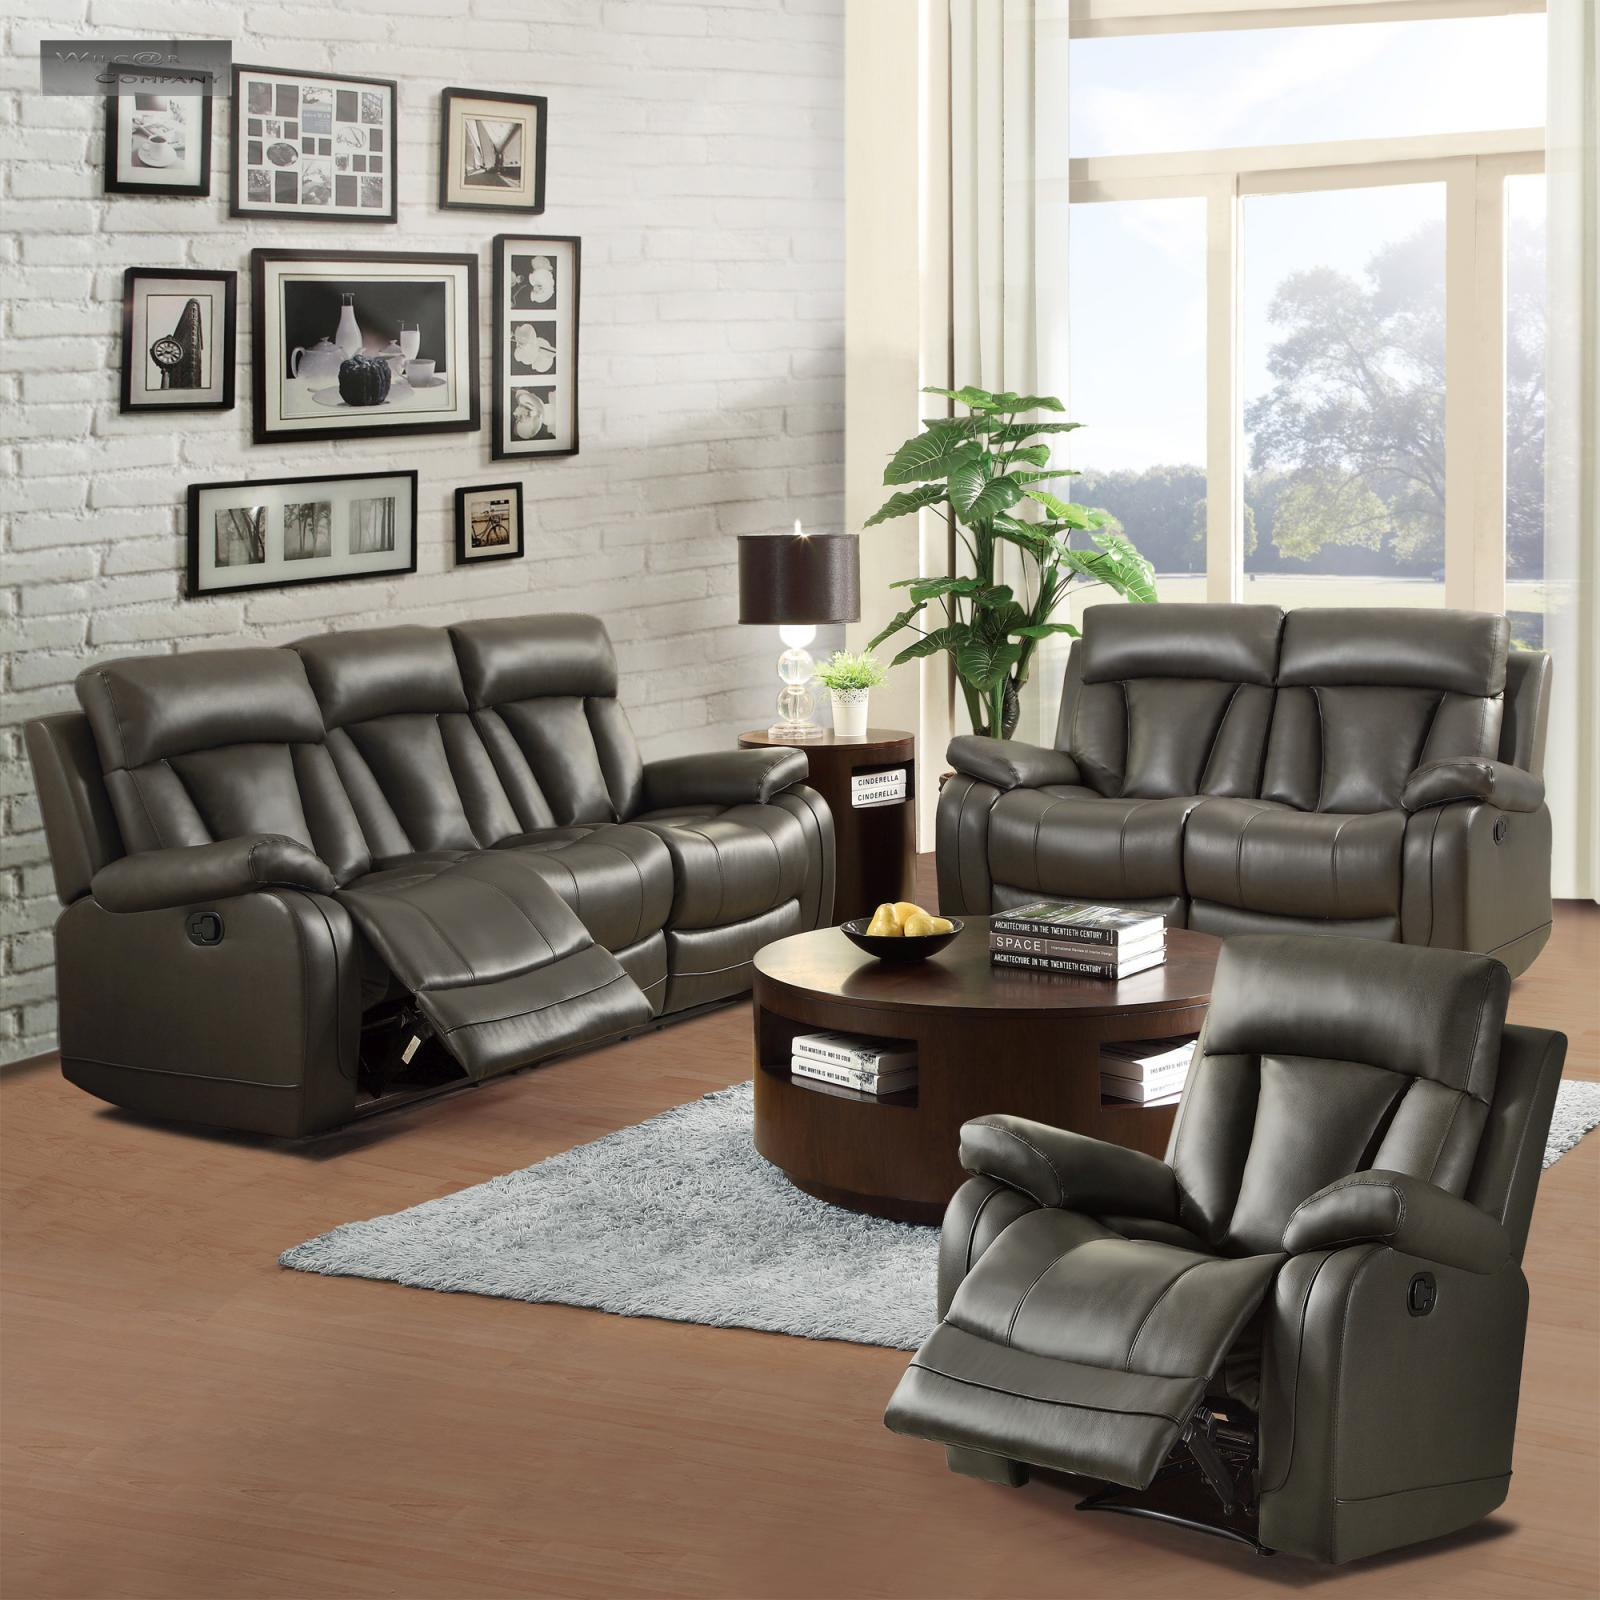 Black Living Room Chair New Black Leather Recliner Lazy Chair Furniture Living